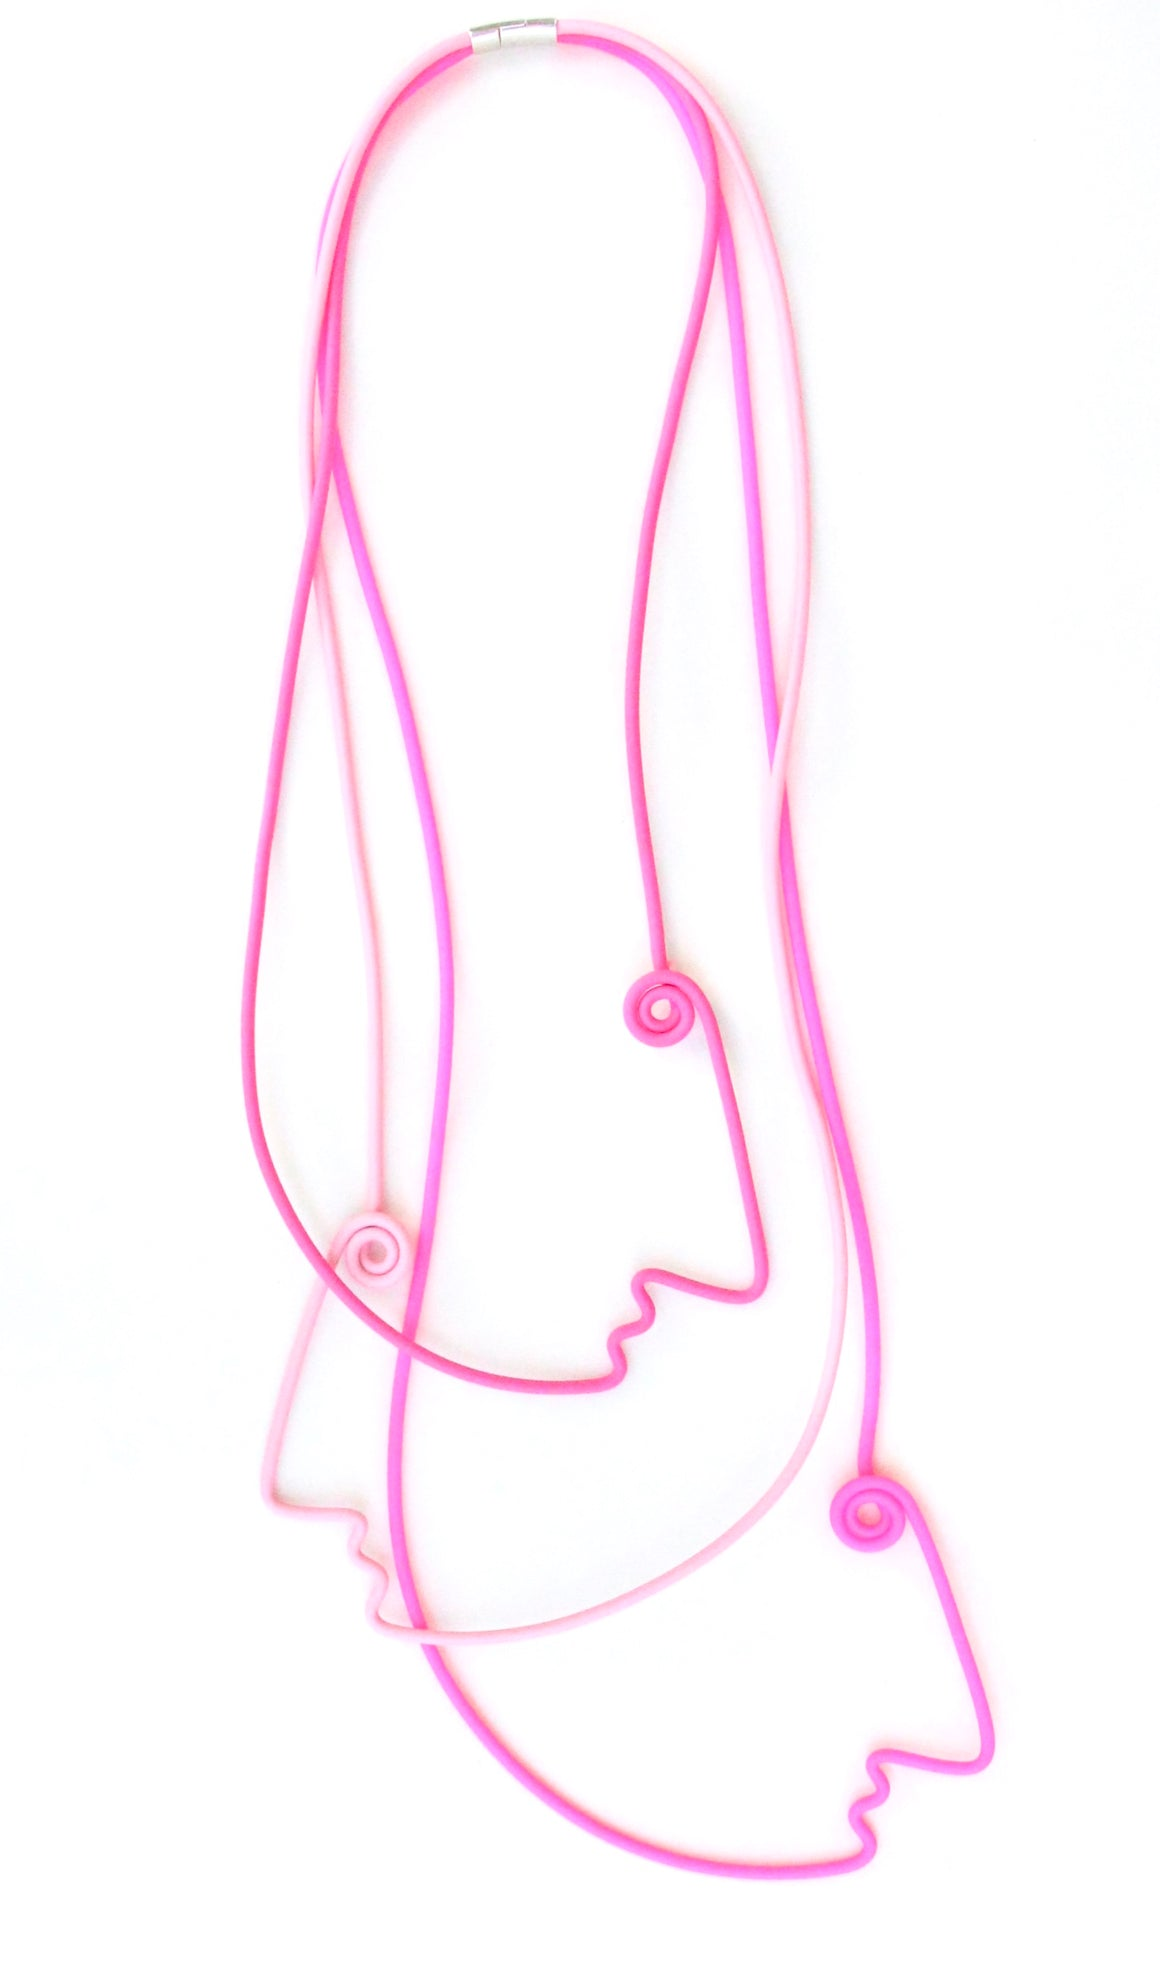 Picasso 3 Faces Necklace - 3 shades of Pink